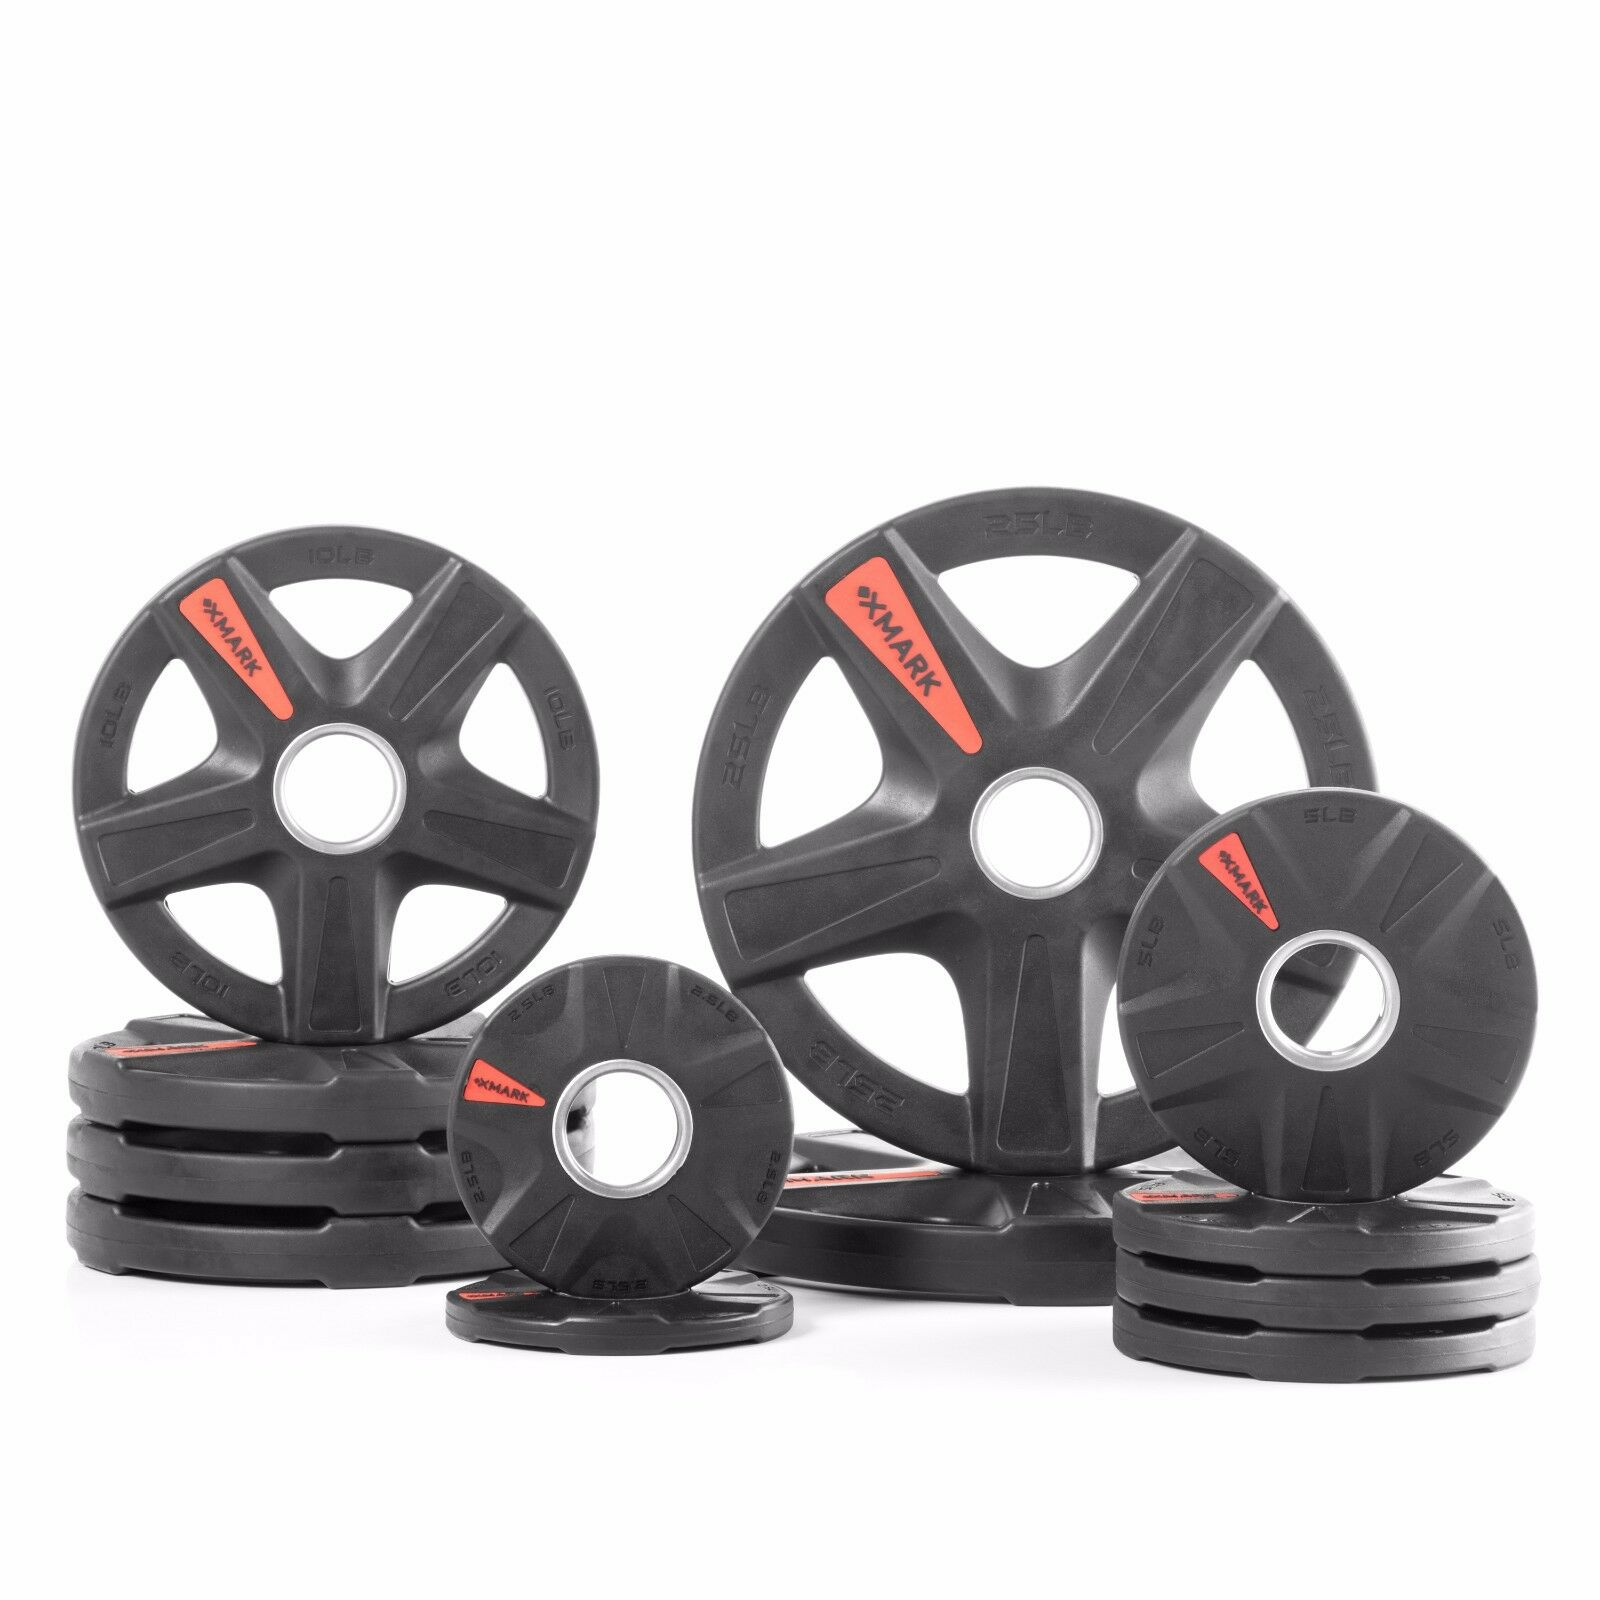 XMark's TEXAS STAR 115 lb. Select Rubber Coated Olympic set XM-3389-BAL-115